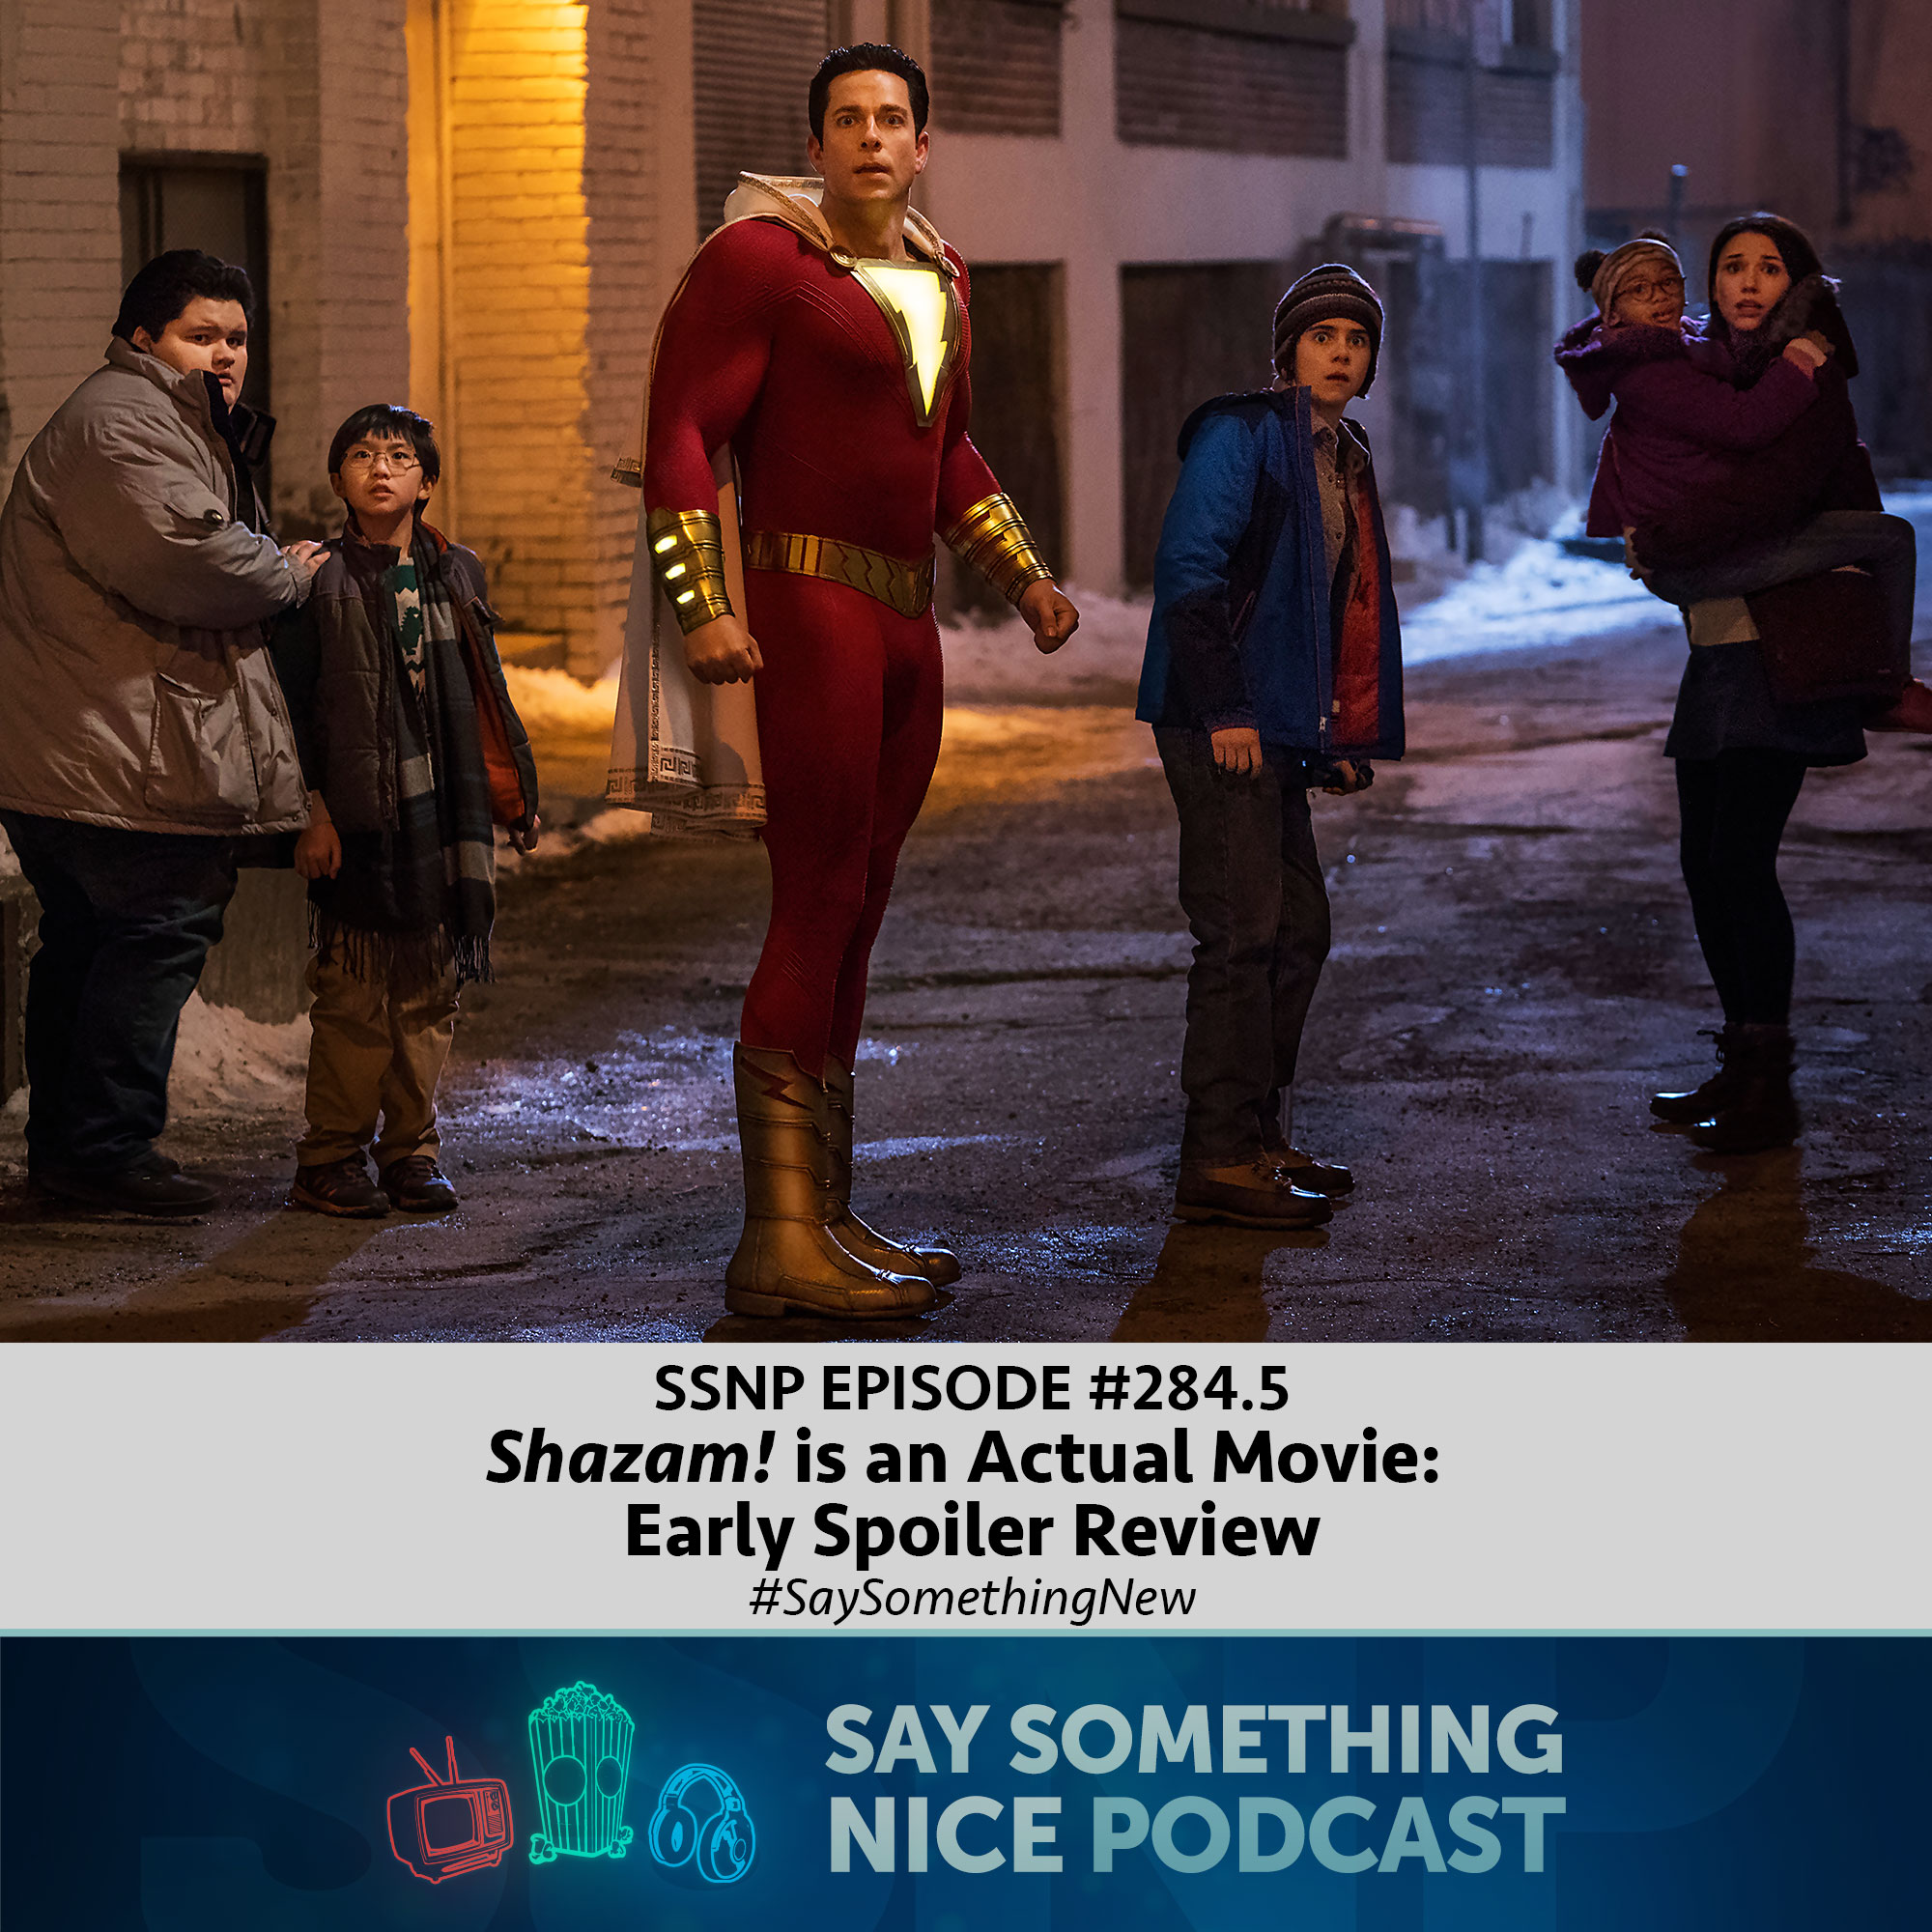 SSNP 284.5 | Shazam! is an Actual Movie - Early Spoiler Review